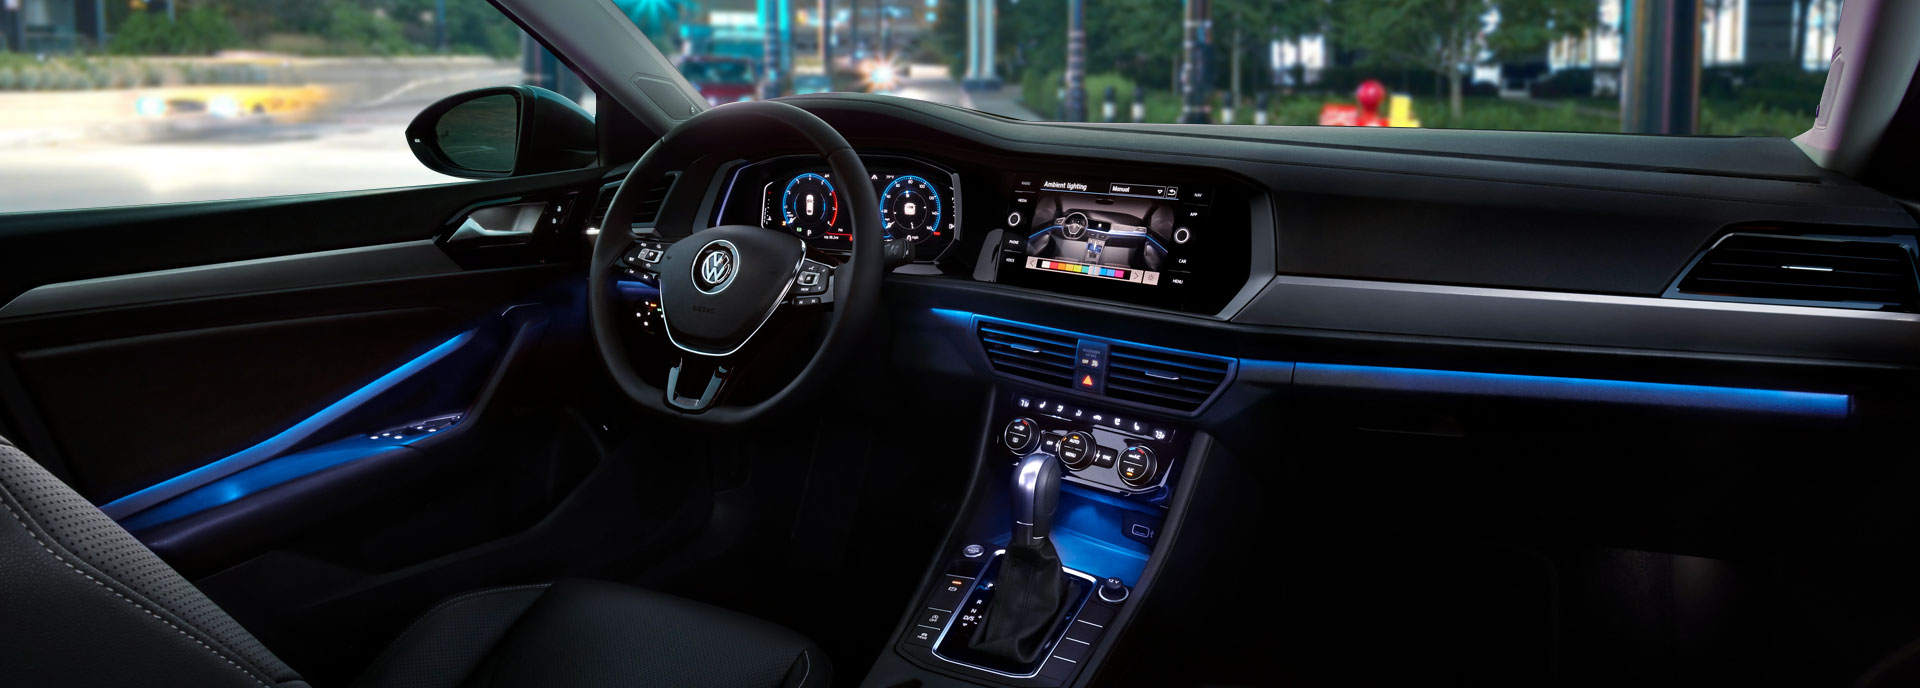 Get a Quote – The 2019 Jetta